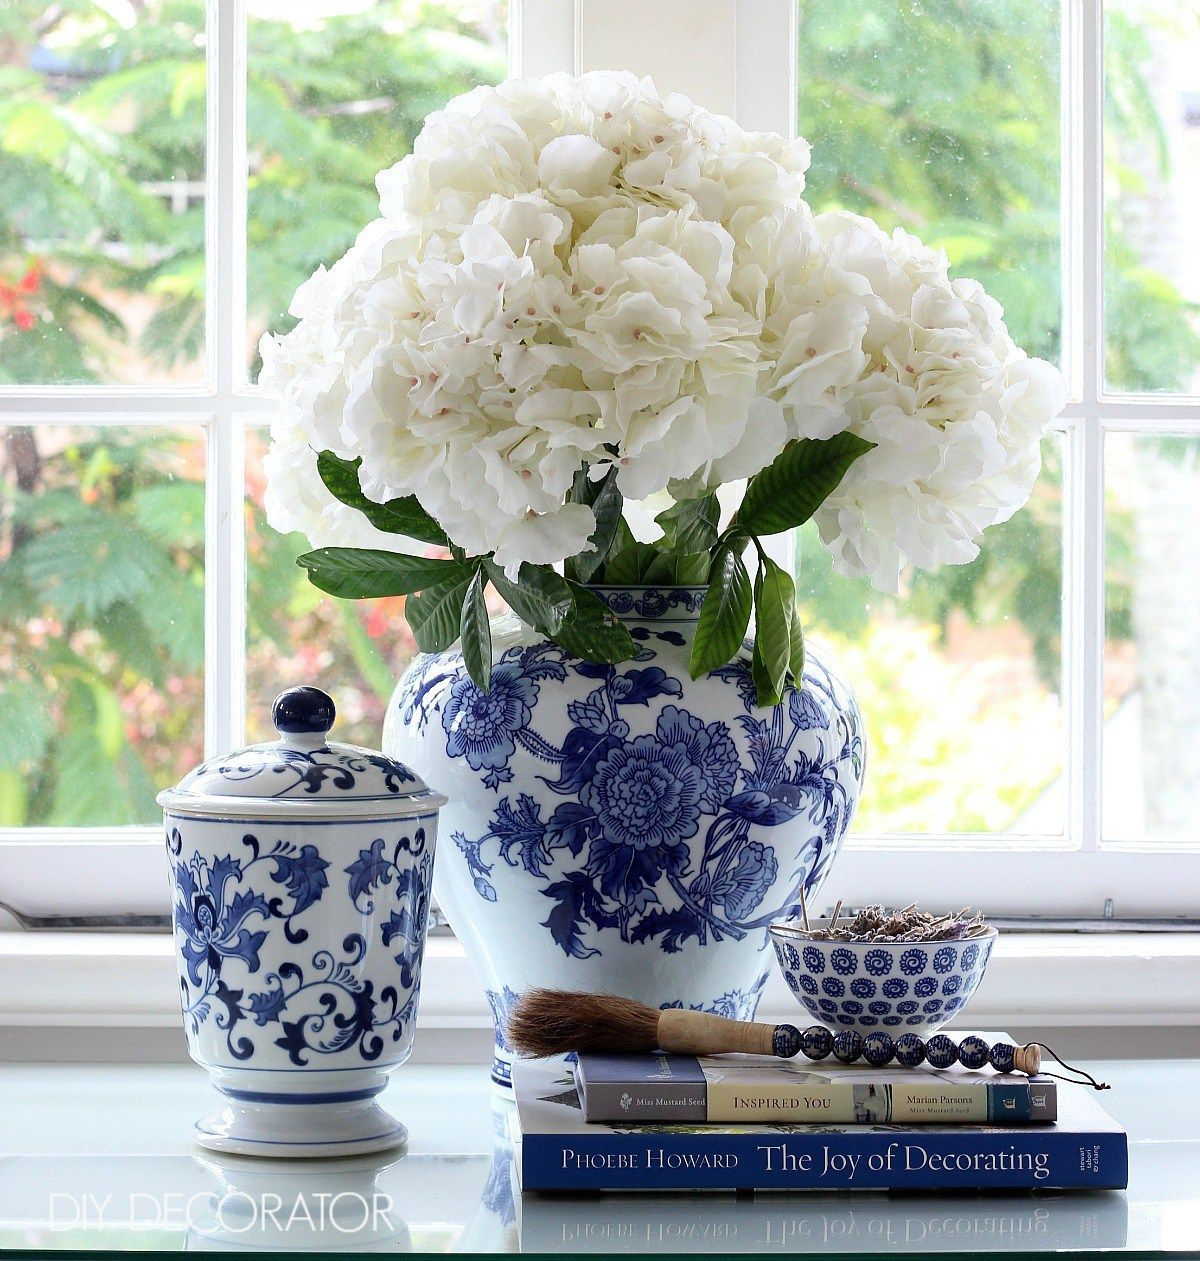 Book Toppers to Try at Home - easy ideas to create a pretty book vignette. Click to see them all. Blue and white